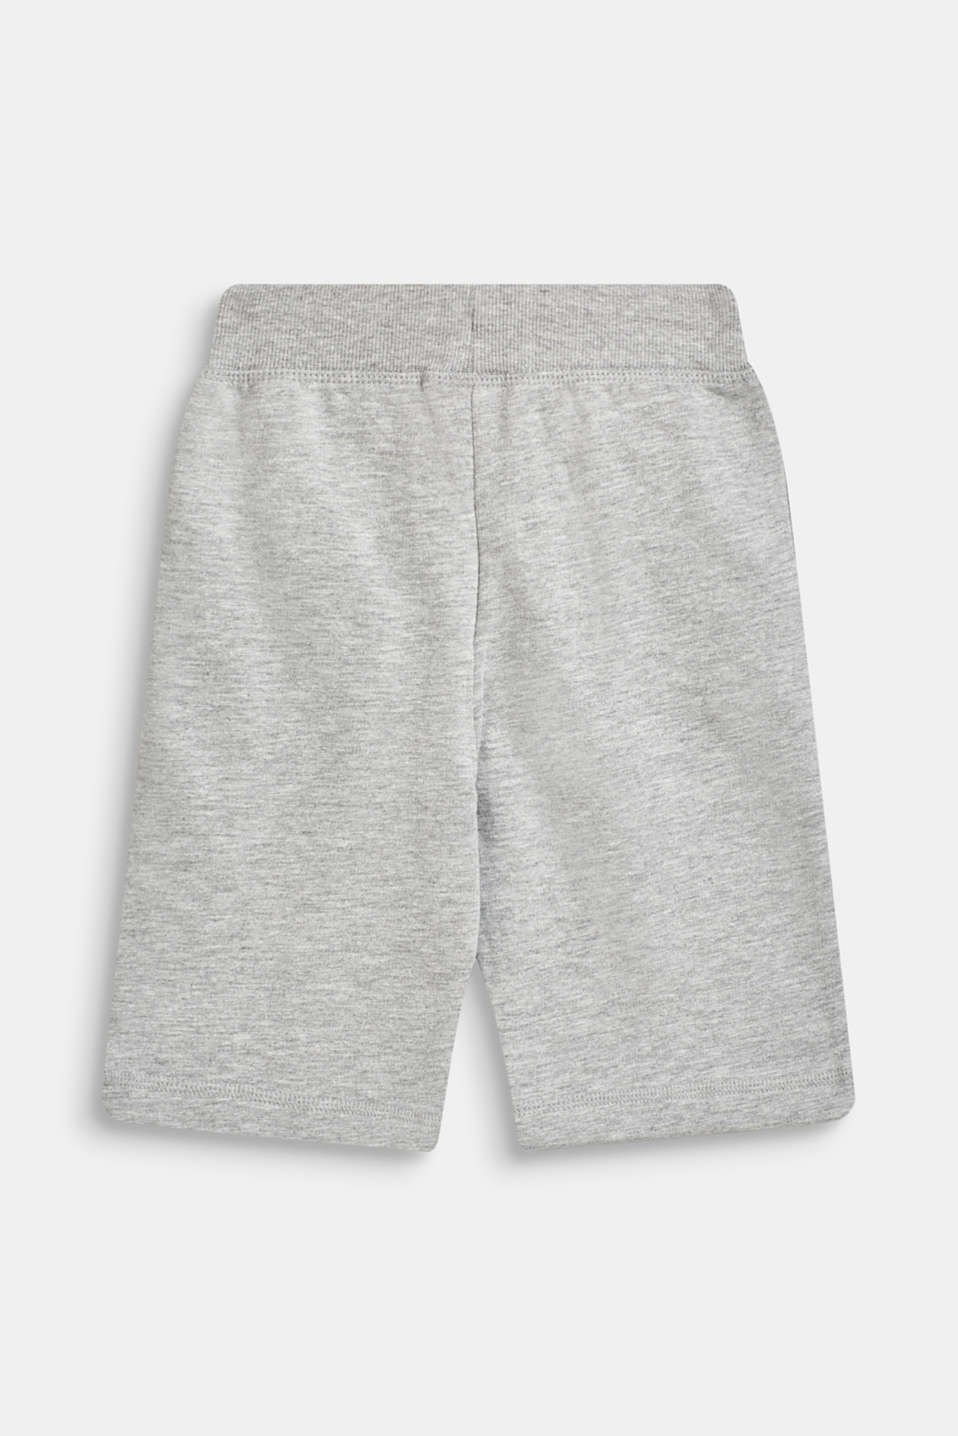 Sweatshirt shorts in 100% cotton, HEATHER SILVER, detail image number 1